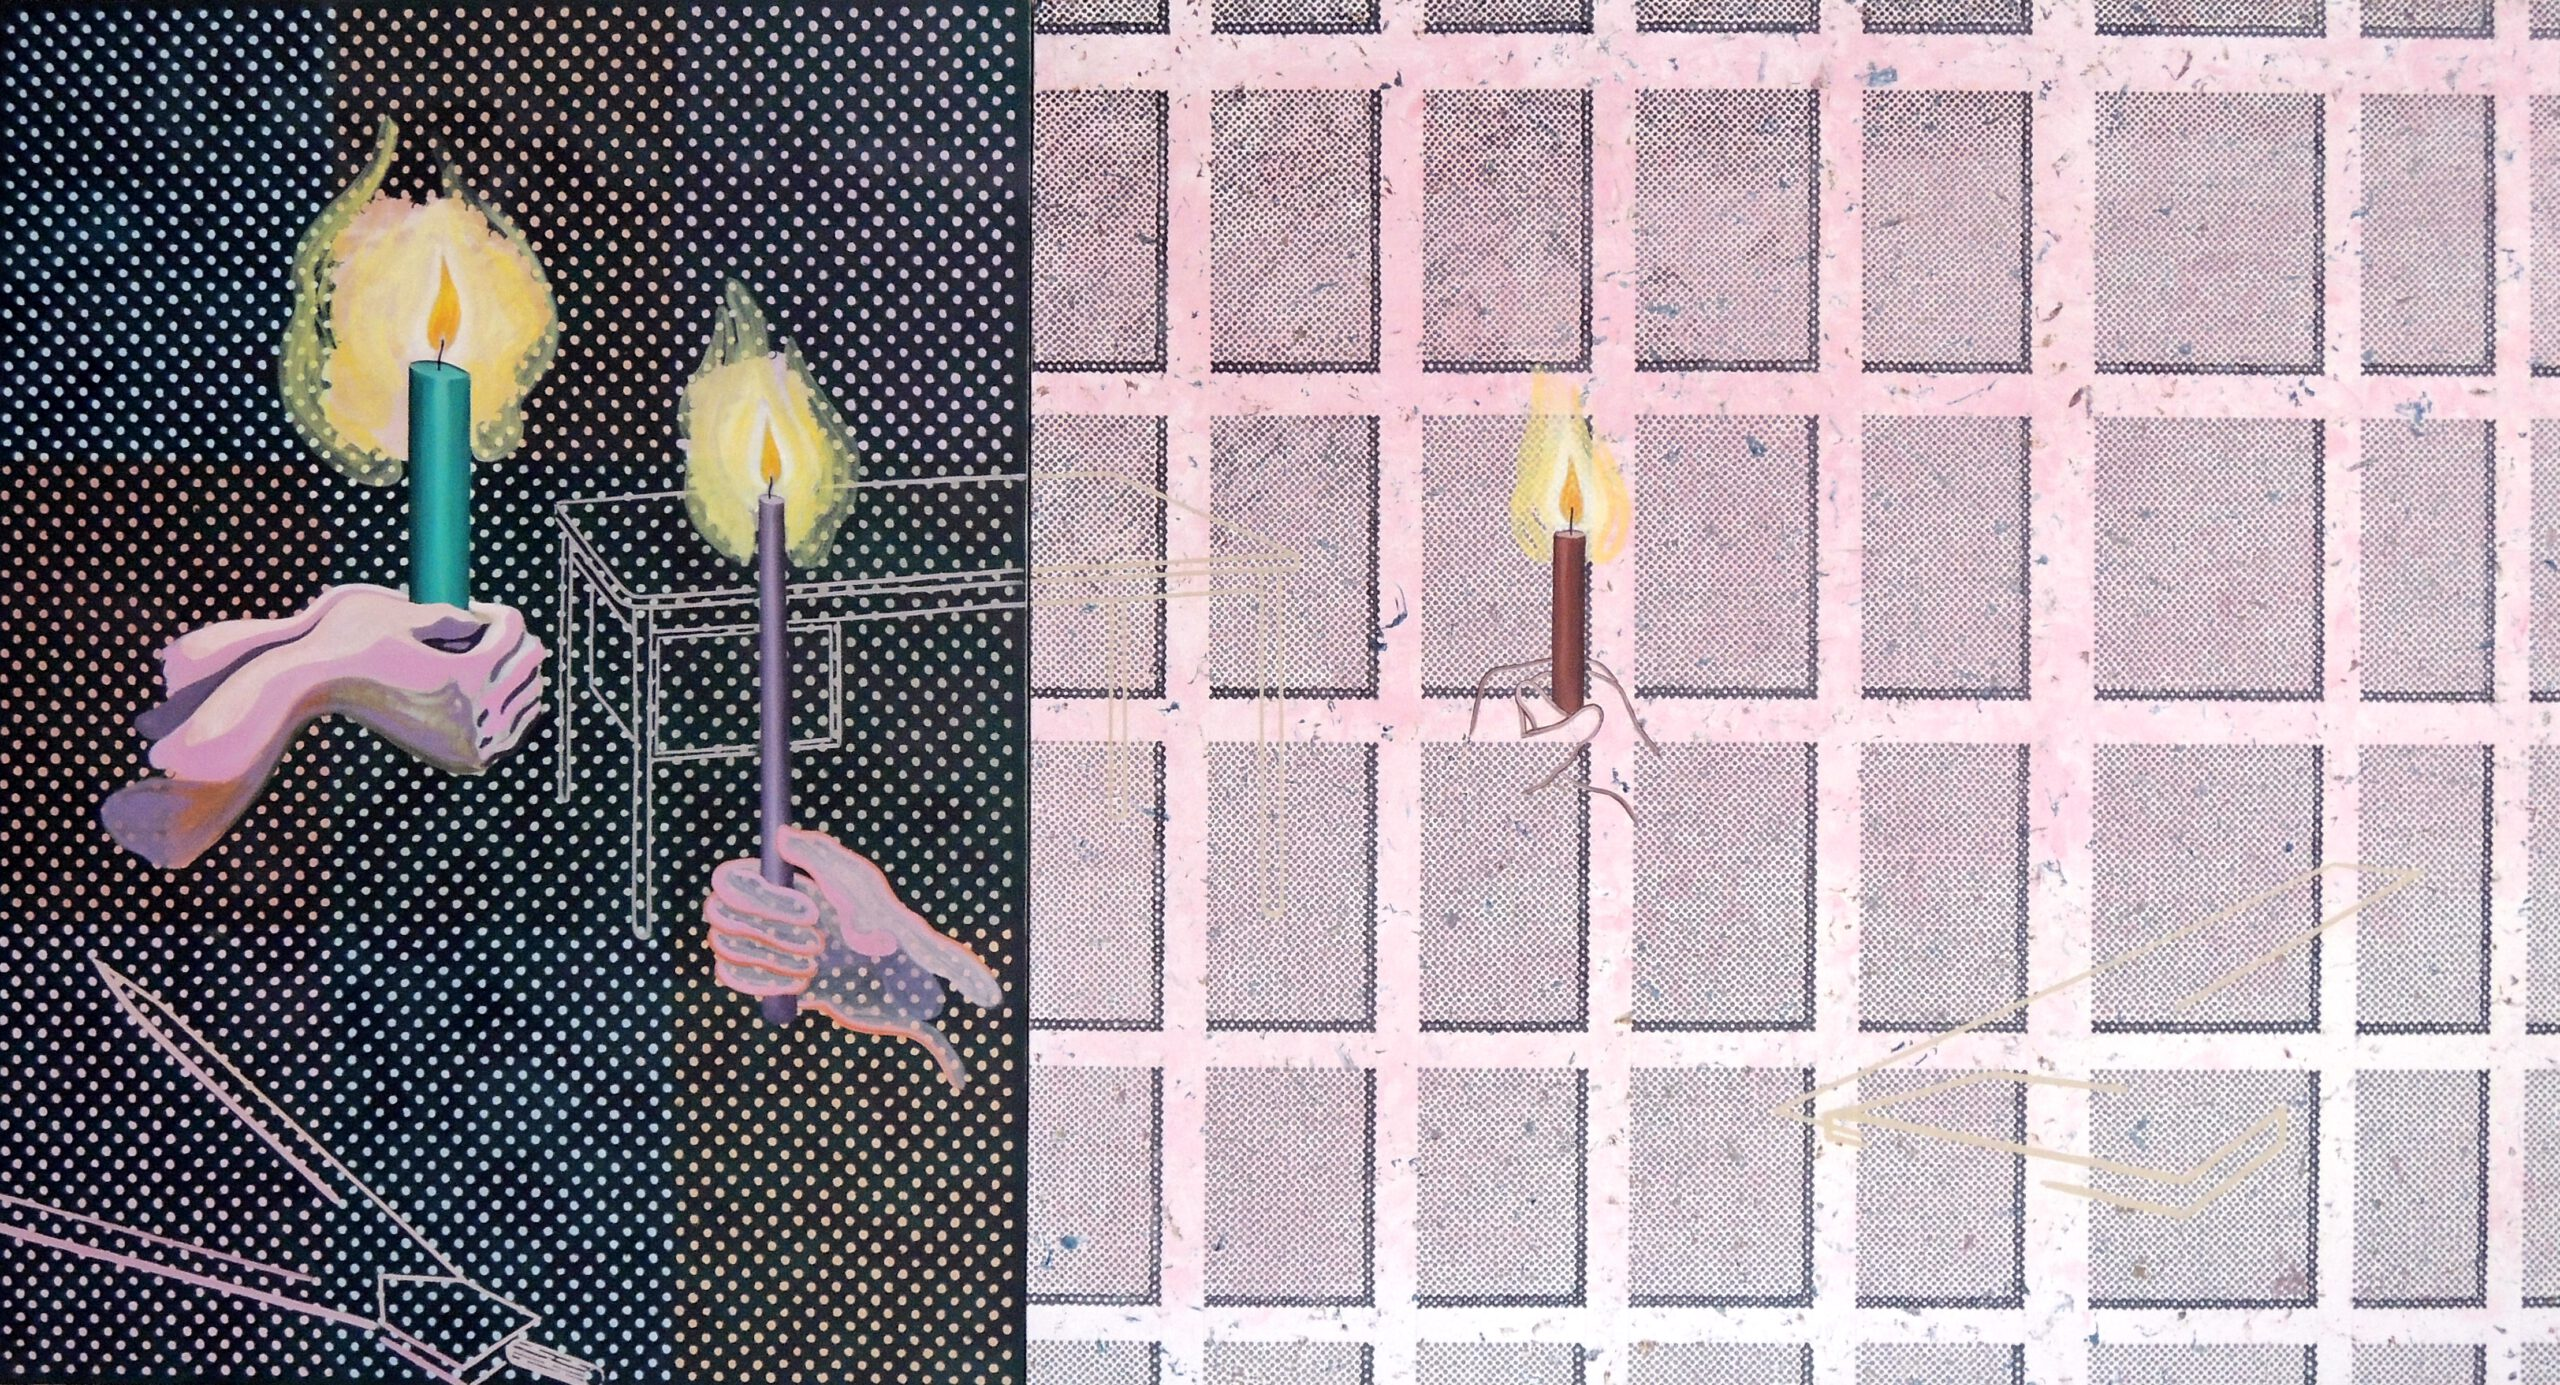 Candles to Squares, oil on canvas, 160 x 295 cm, 1994